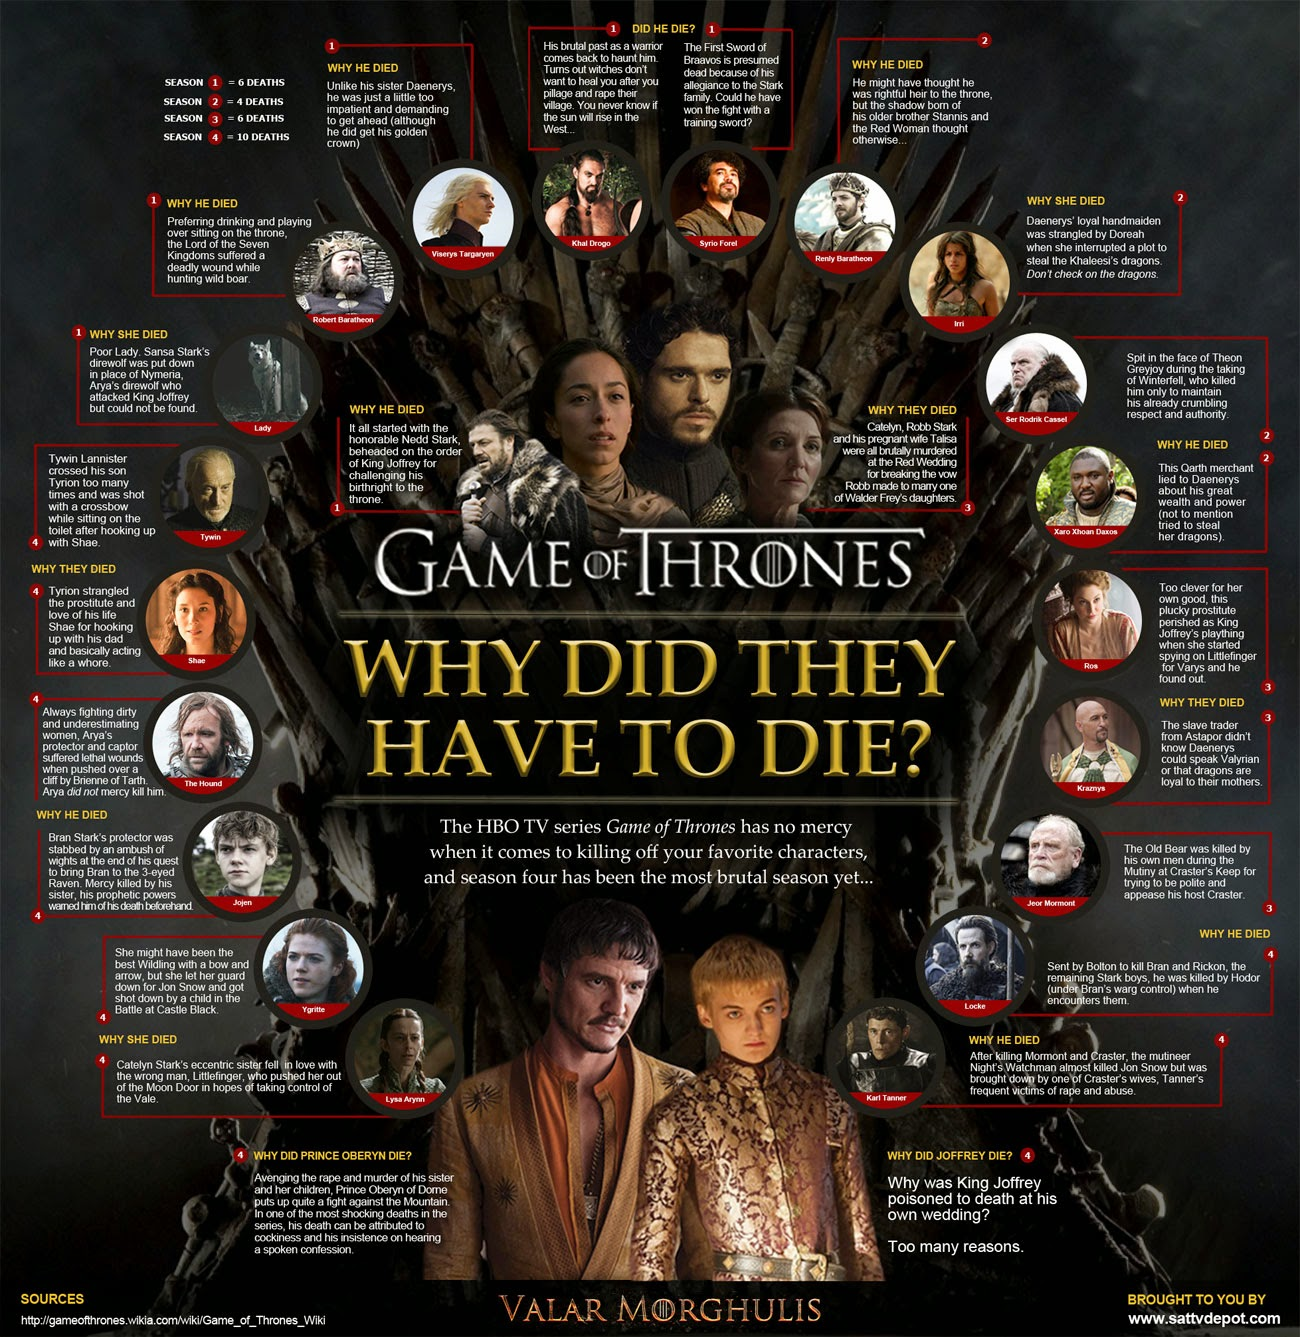 navarinoinvestment.blo.com: GAME OF THRONES-CHARACTER ... on the girl with the dragon tattoo character map, george r. r. martin, a song of ice and fire, south park character map, fire and blood, a feast for crows, breaking bad character map, the winds of winter, king of thrones map, king of thorns map, assassin's creed character map, winter is coming, once upon a time character map, tales of dunk and egg, a clash of kings, character counts map, lord snow, walking dead map, a golden crown, mad men character map, a dance with dragons, game of thrones - season 2, a storm of swords, true detective character map, a feast for crows character map, lego batman 2 character map, dothraki language, fire and ice book map, the prince of winterfell, house targaryen, house of cards character map, criminal minds character map, alfie owen-allen, gameof thrones map, game of thrones - season 1,